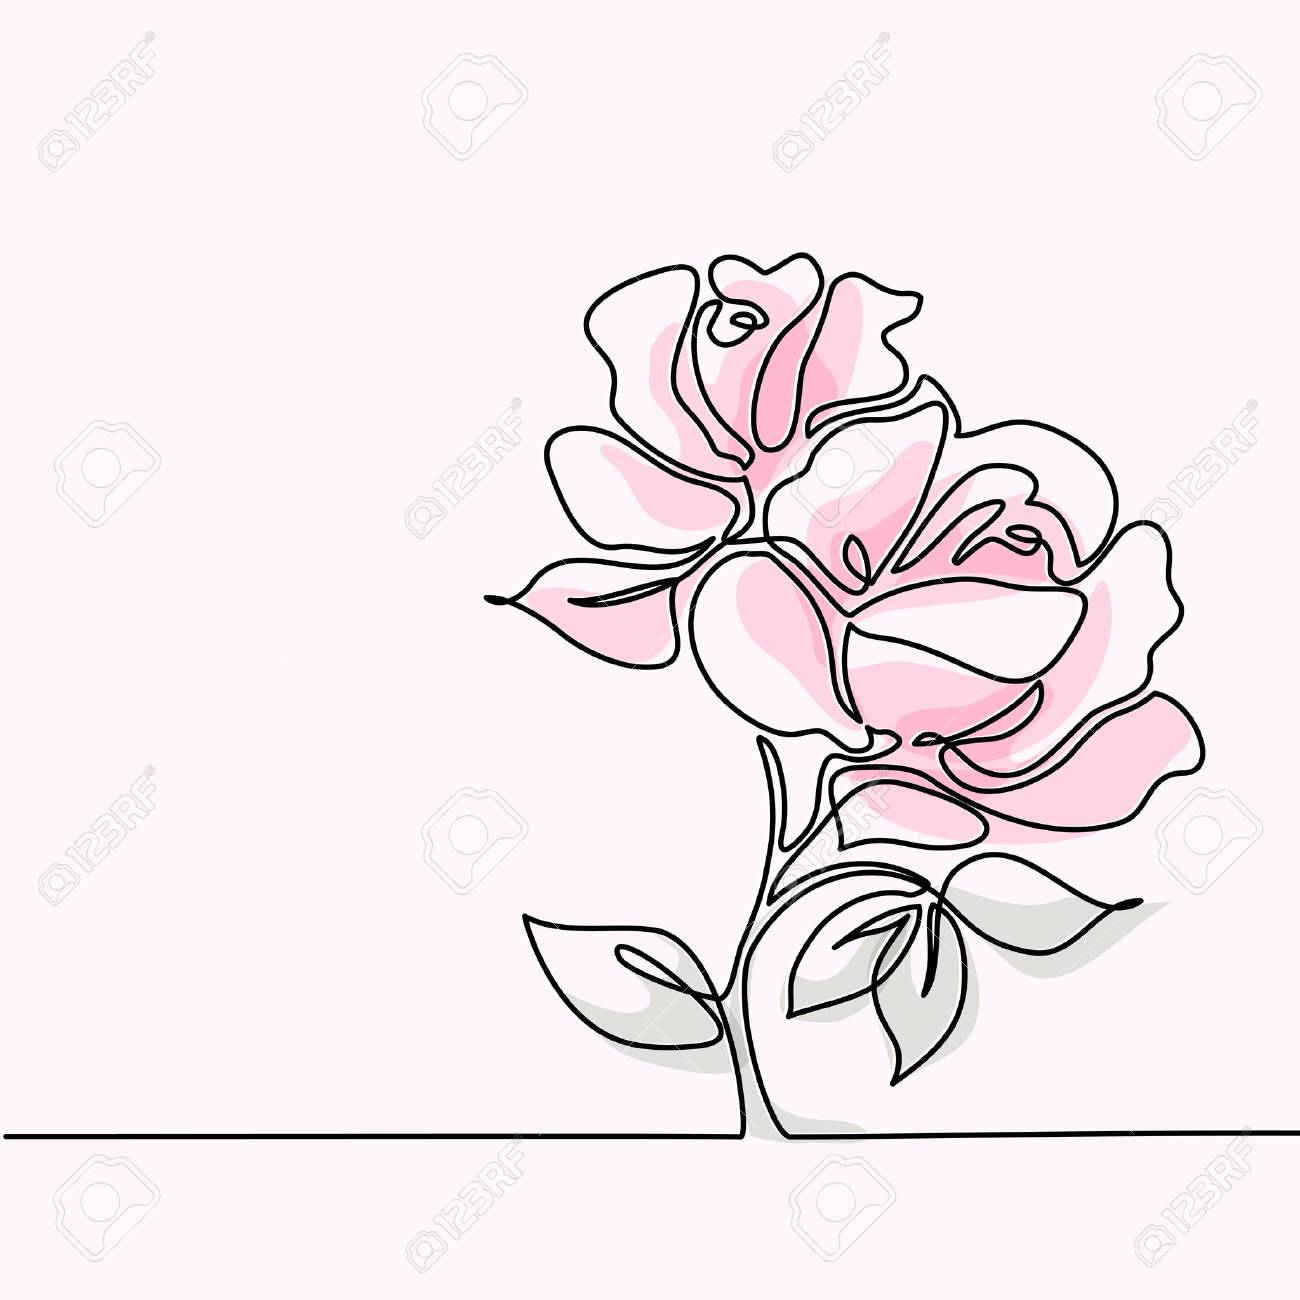 Line Art Design Illustration : Simple flower line drawing at getdrawings free for